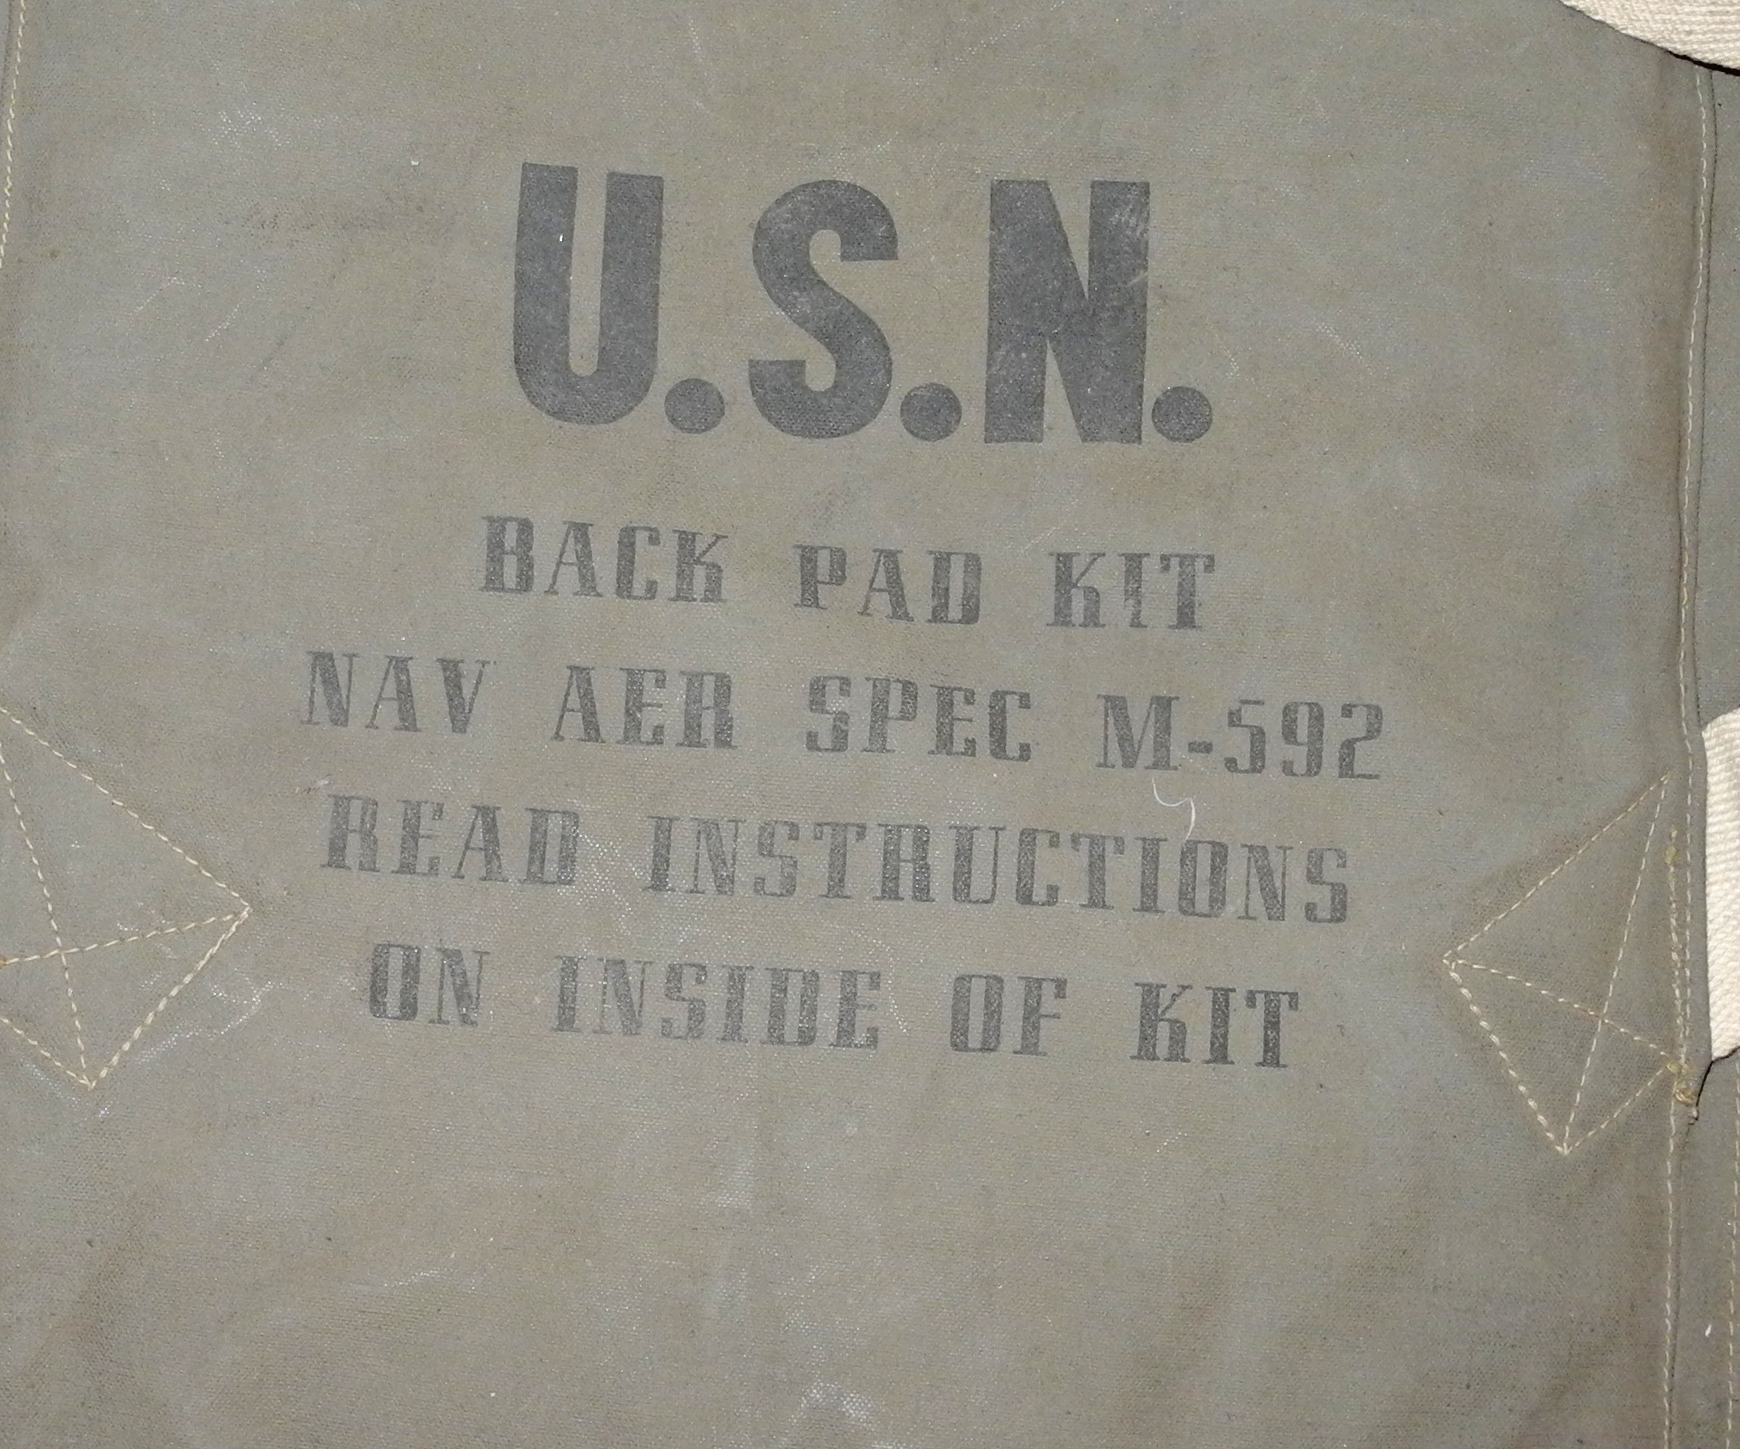 USN M-592 survival kit backpack